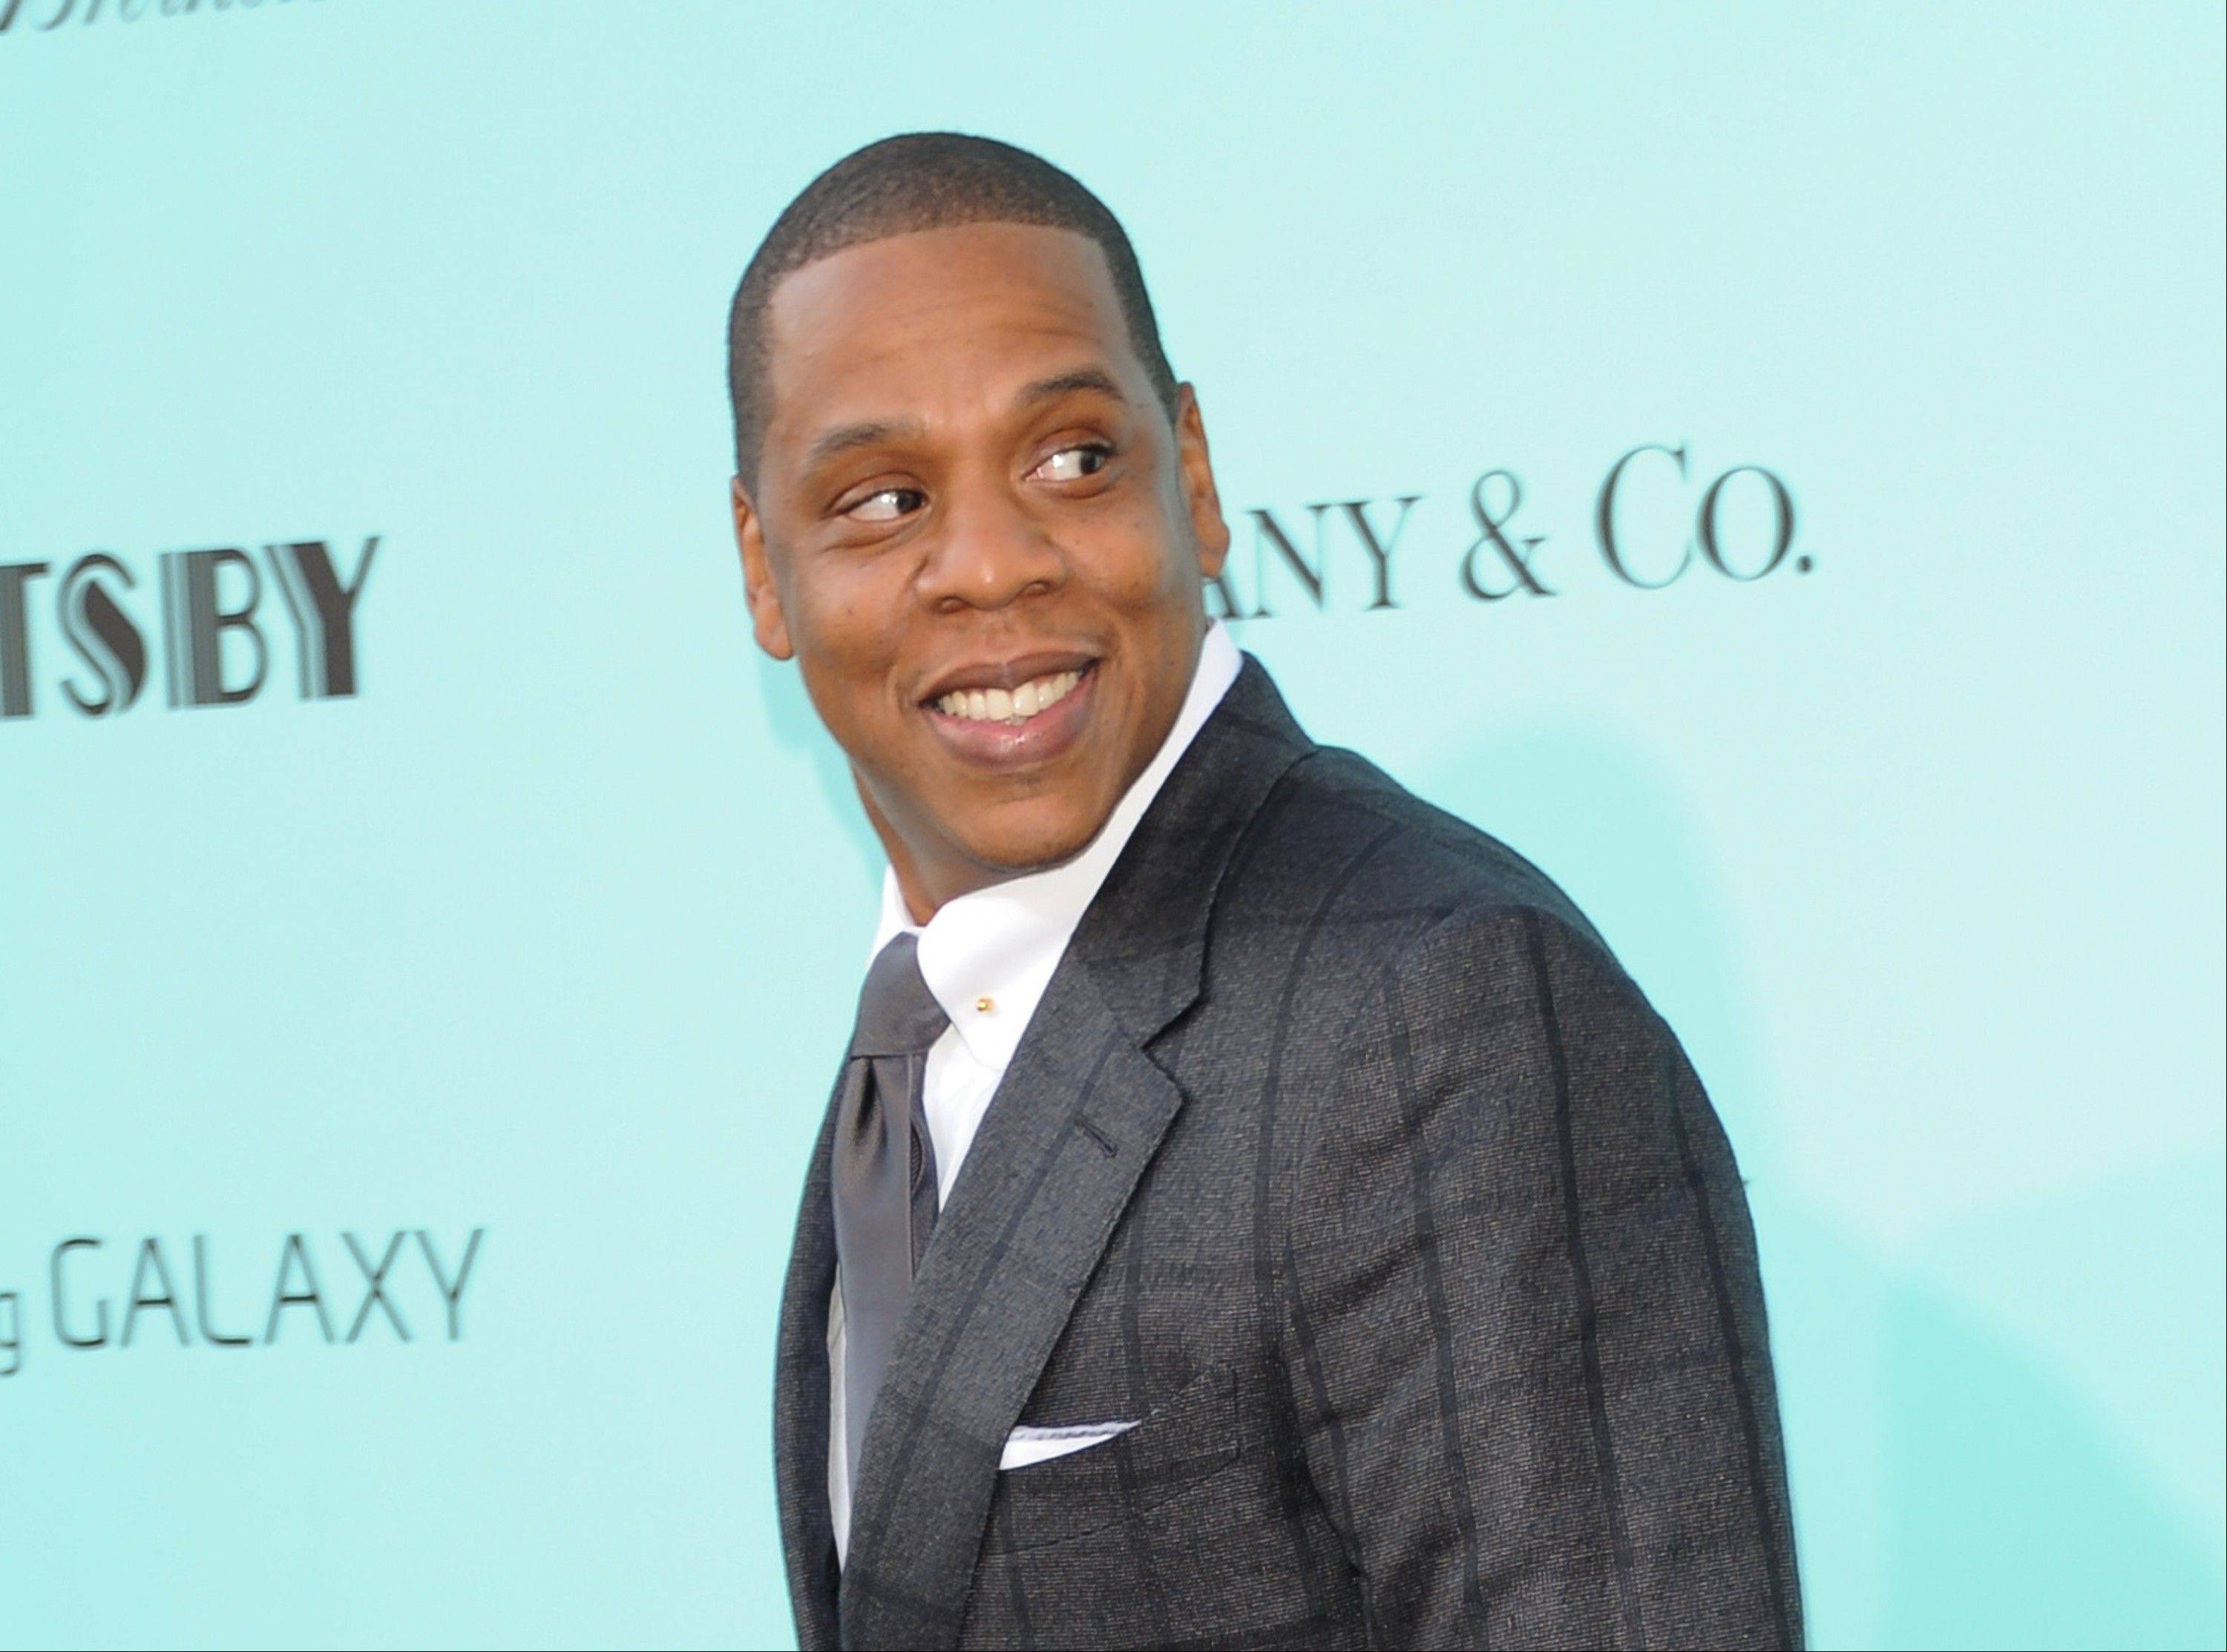 "Jay-Z is teaming up with Samsung to release his new album, unveiling a three-minute commercial during the NBA Finals and announcing a deal that will give the music to 1 million users of Galaxy mobile phones. The new album, called ""Magna Carta Holy Grail,"" will be free for the first 1 million android phone owners who download an app for the album."